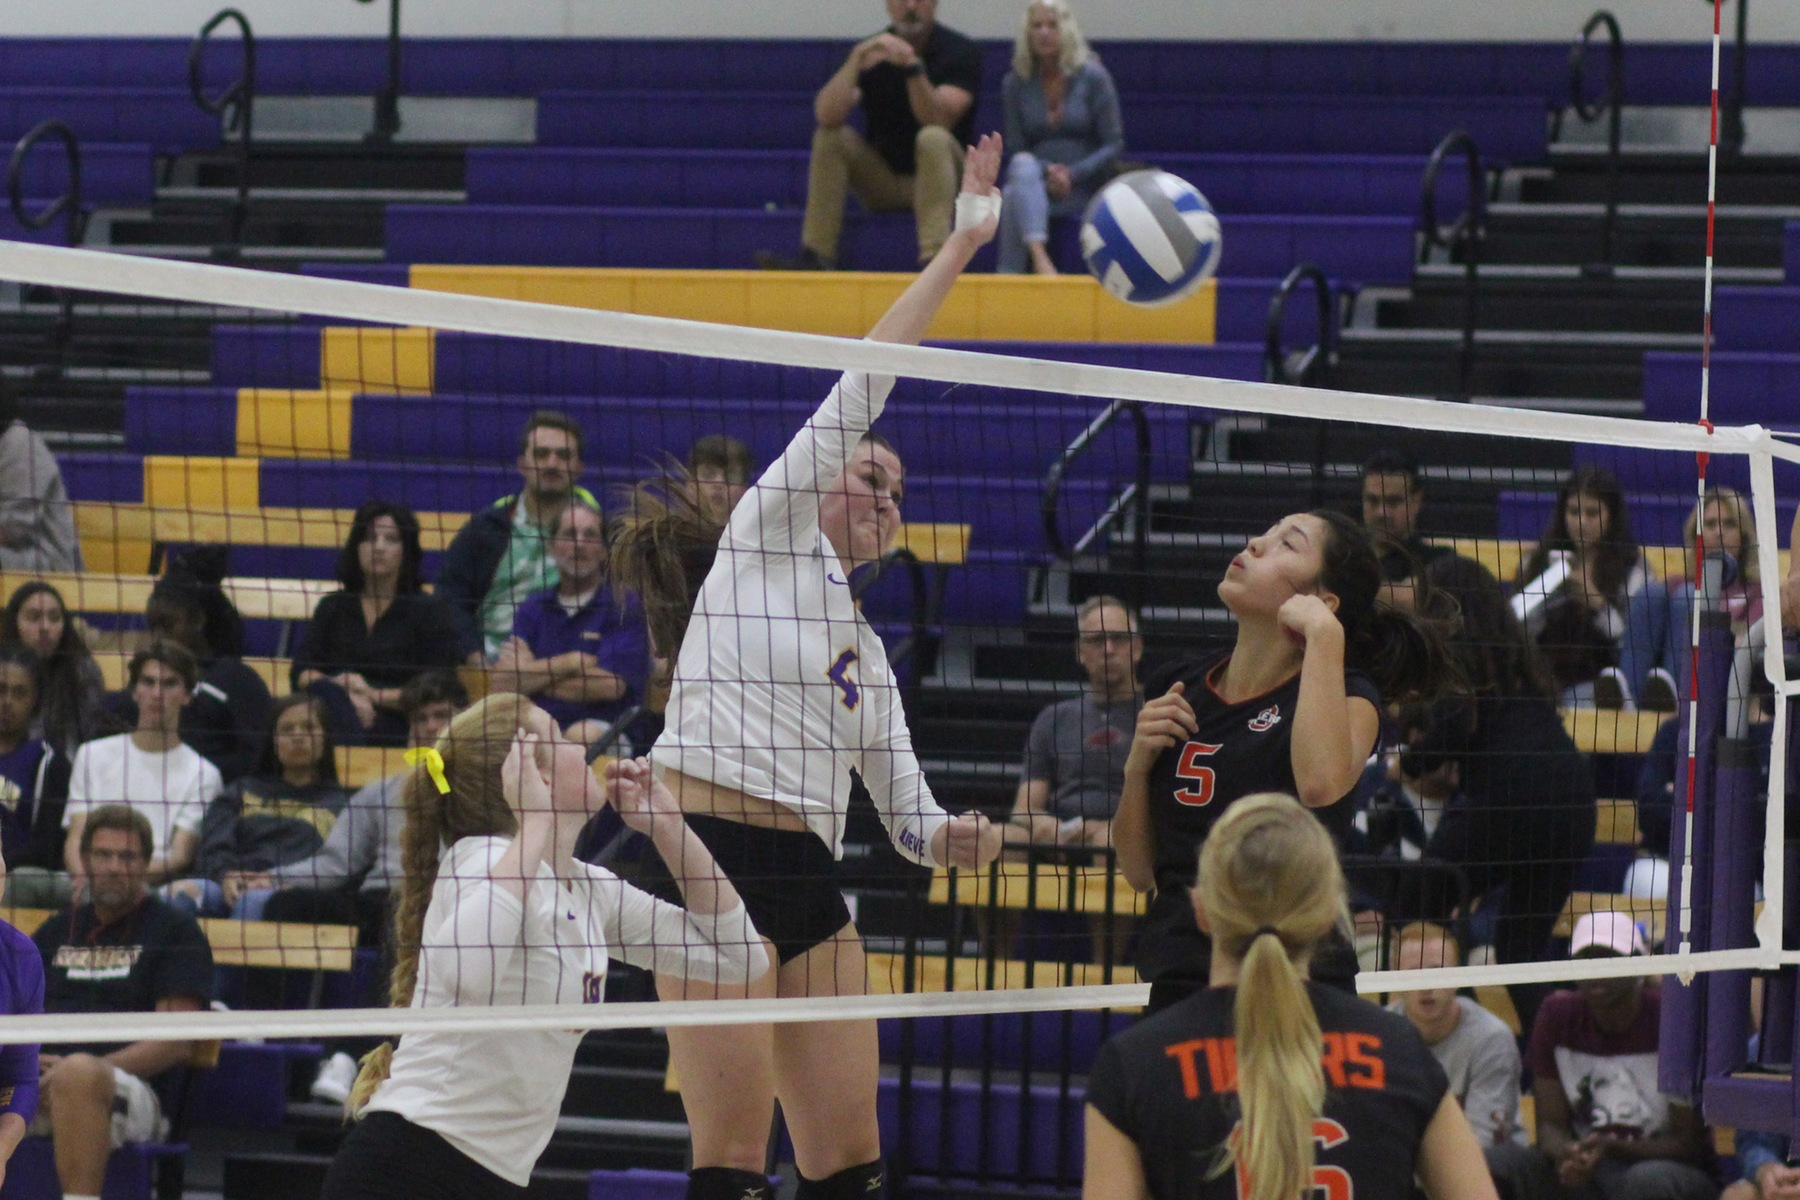 Regals Stun Top-15 Opponents on Day One